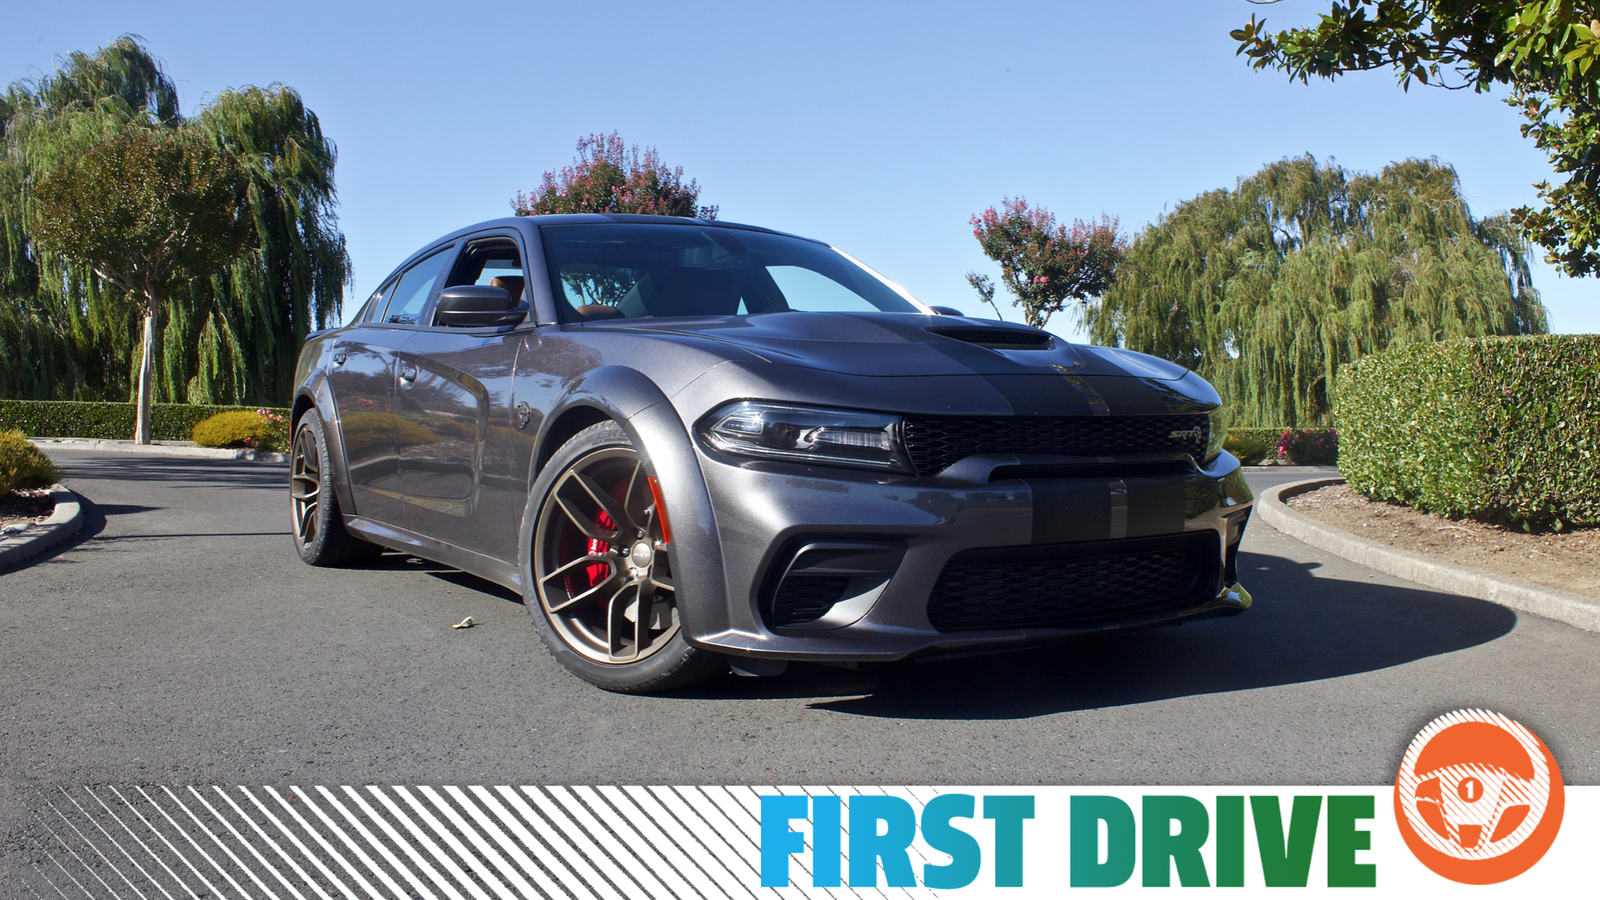 The 2020 Dodge Charger Srt Hellcat Widebody Is A 707 Hp Four